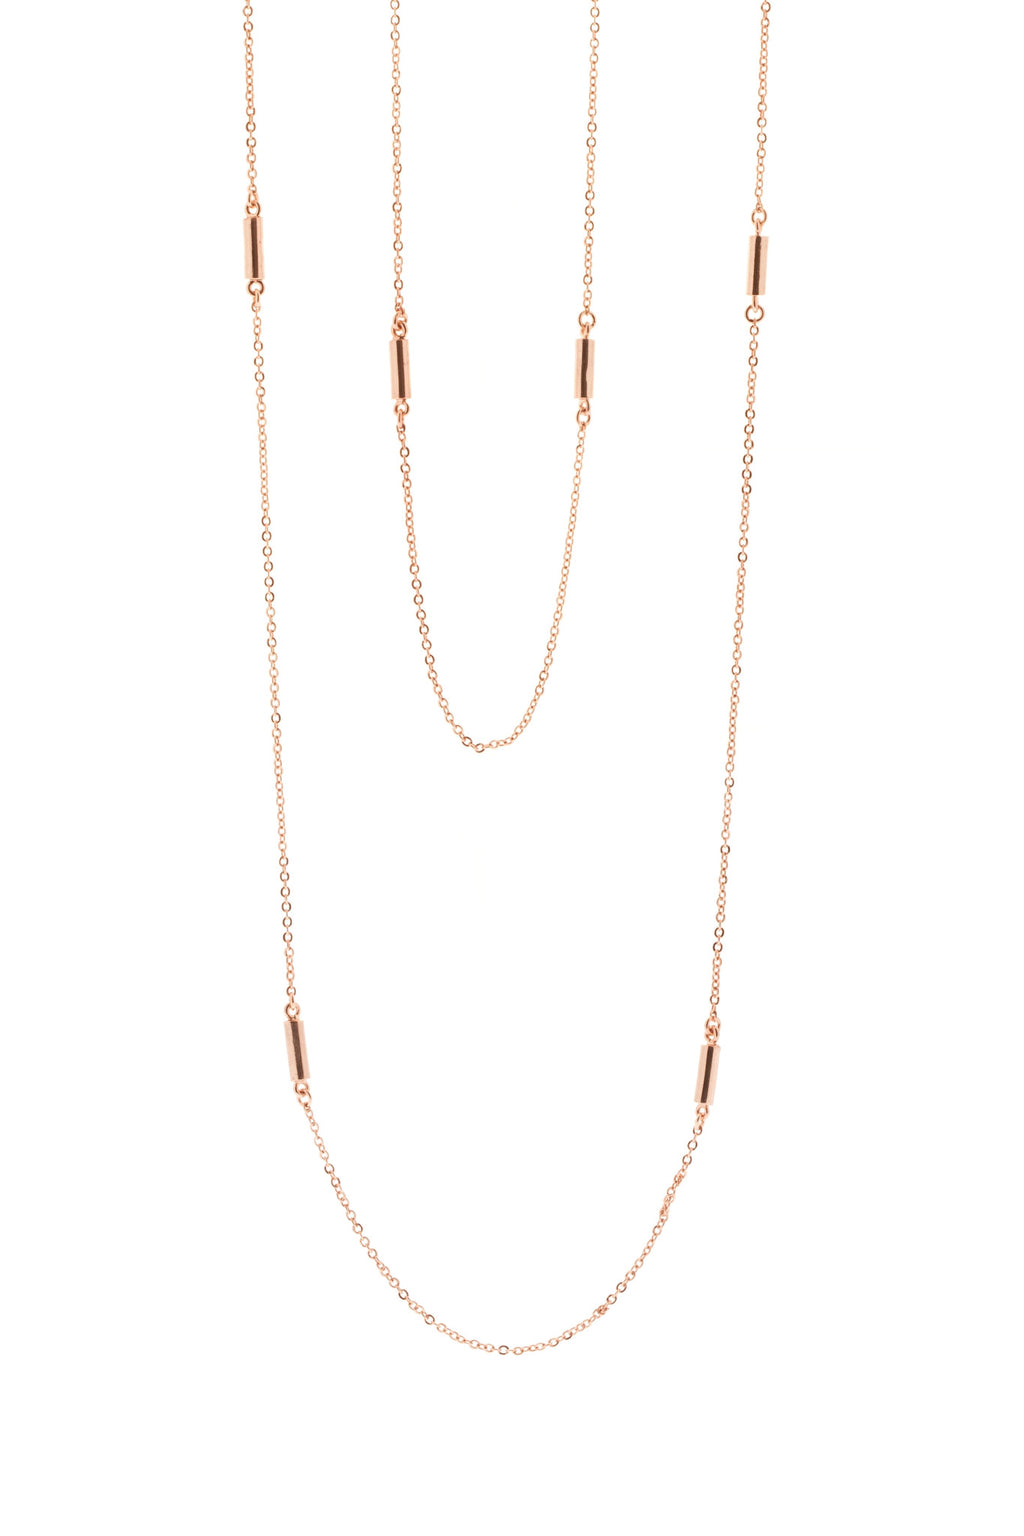 Rose Gold Wrap Necklace from the Ogham Collection